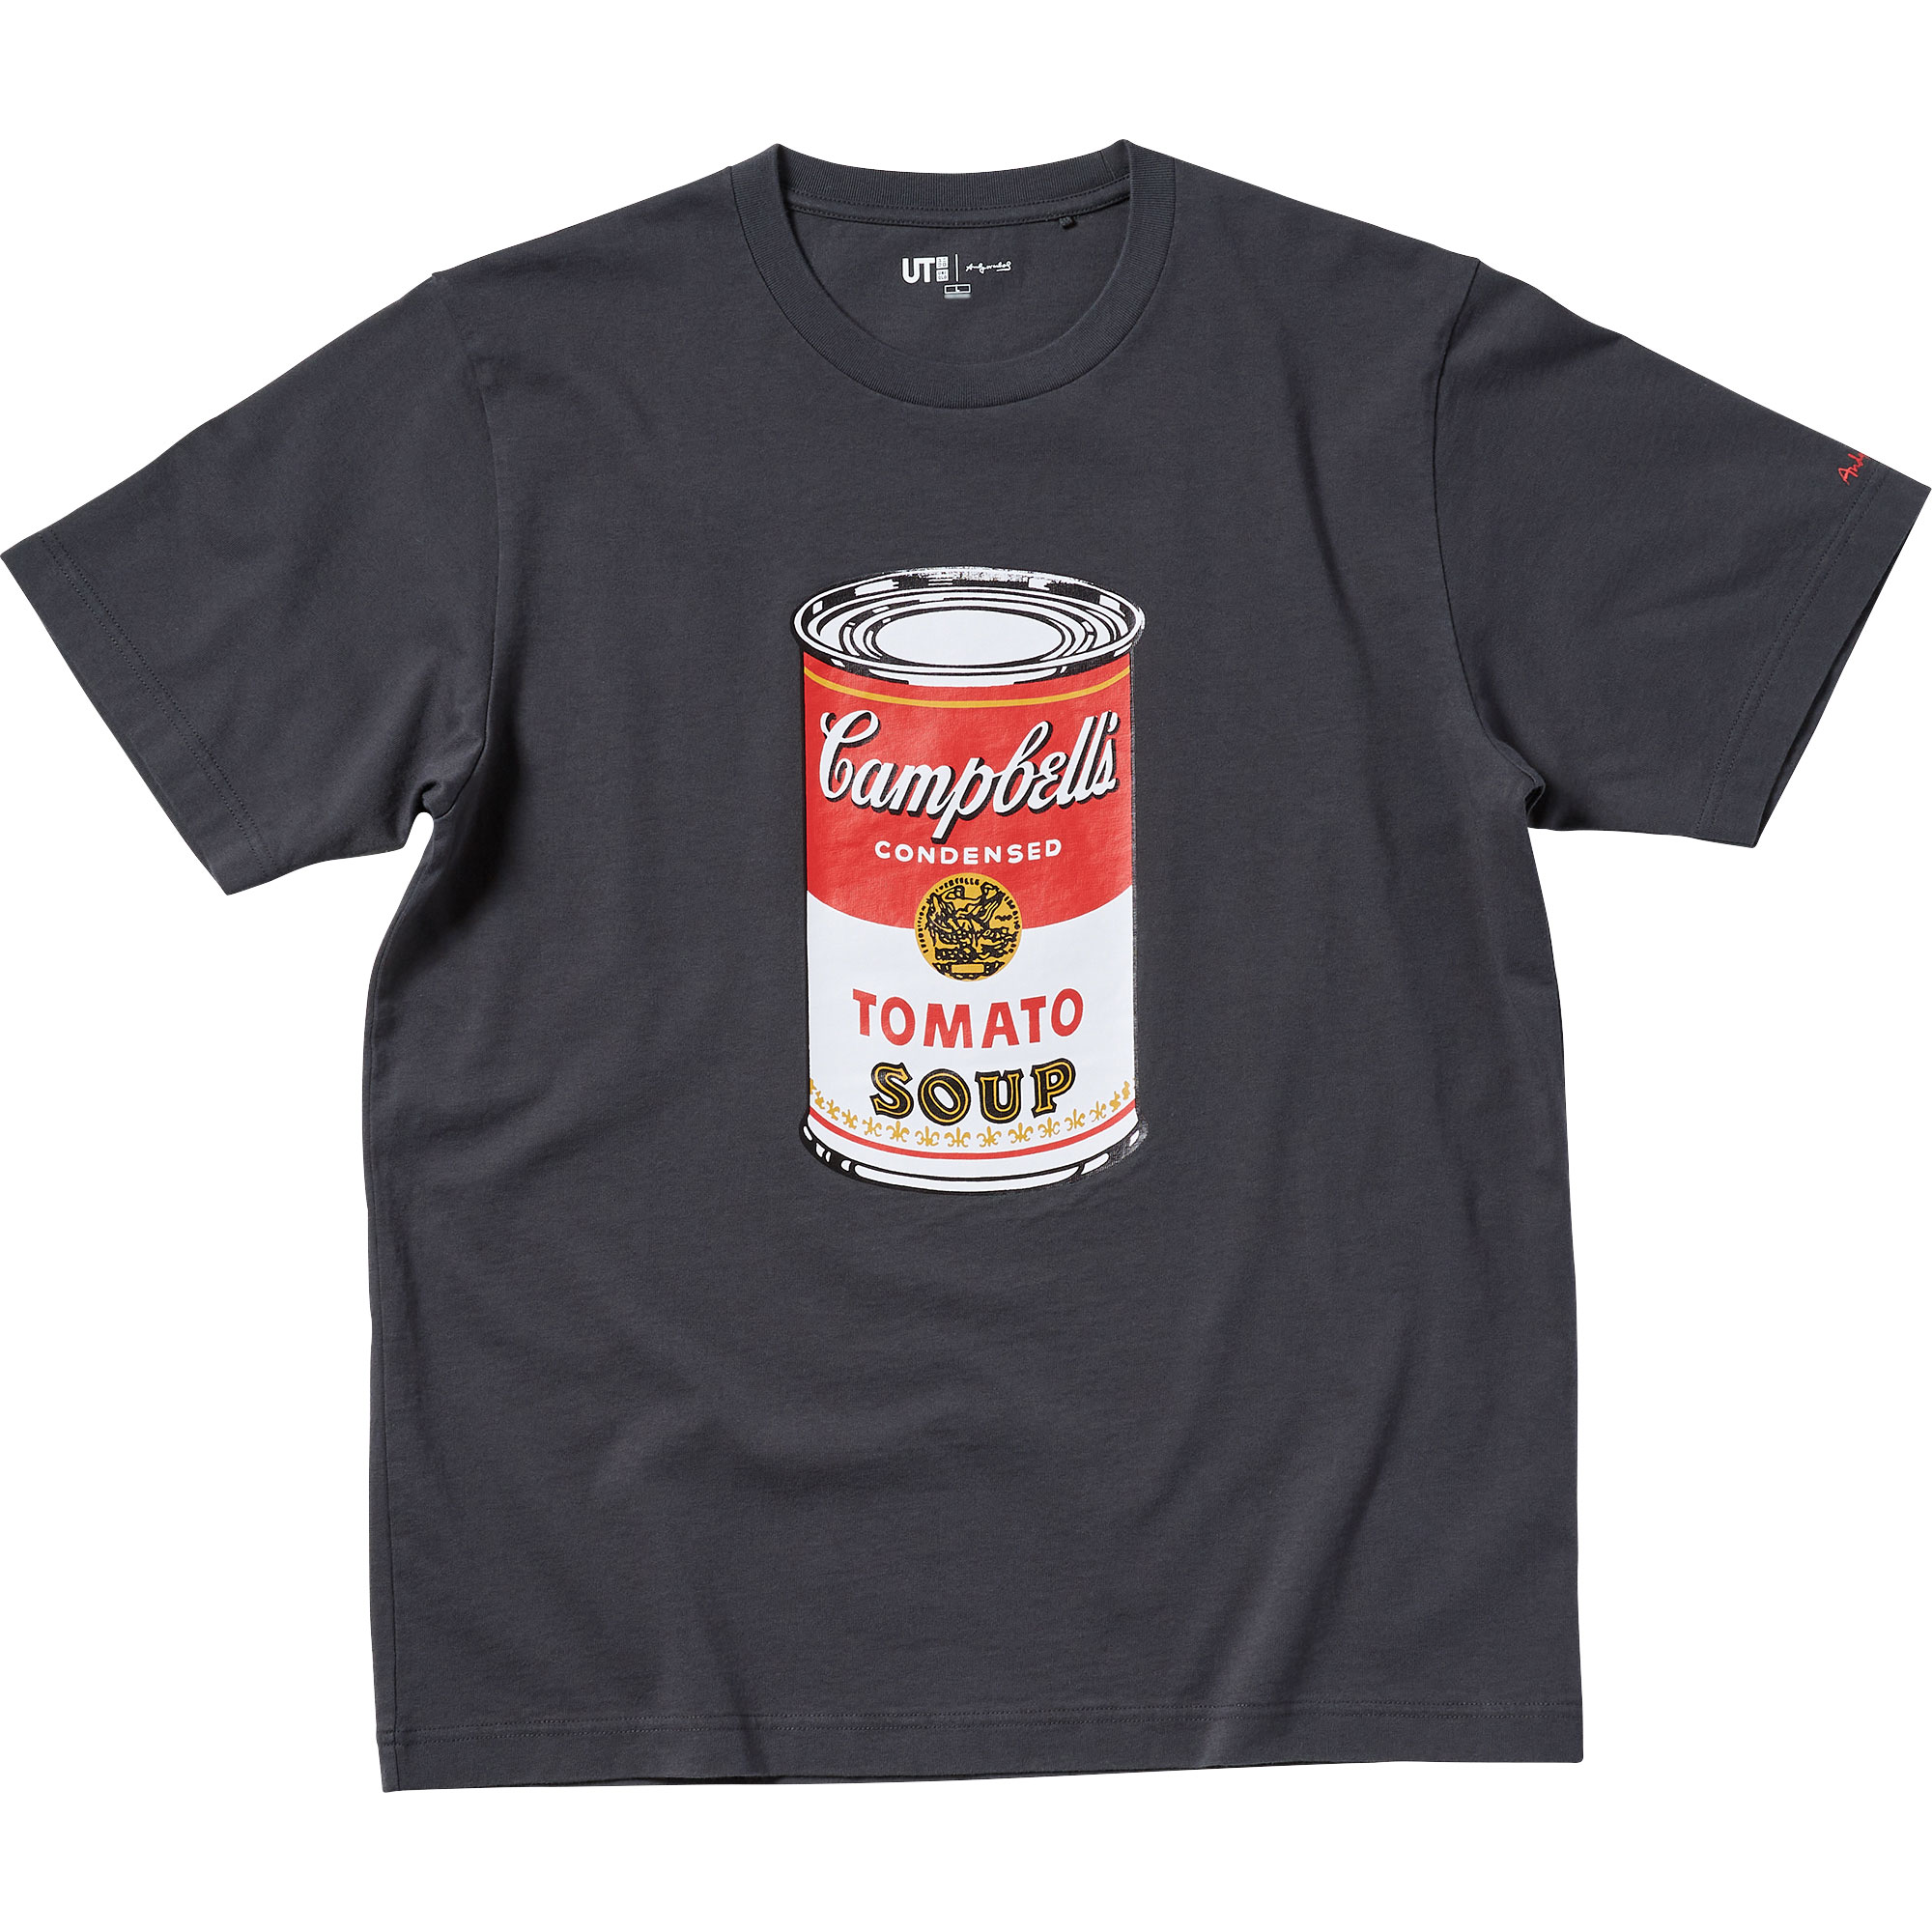 Andy Warhol UT Campbell's Tee